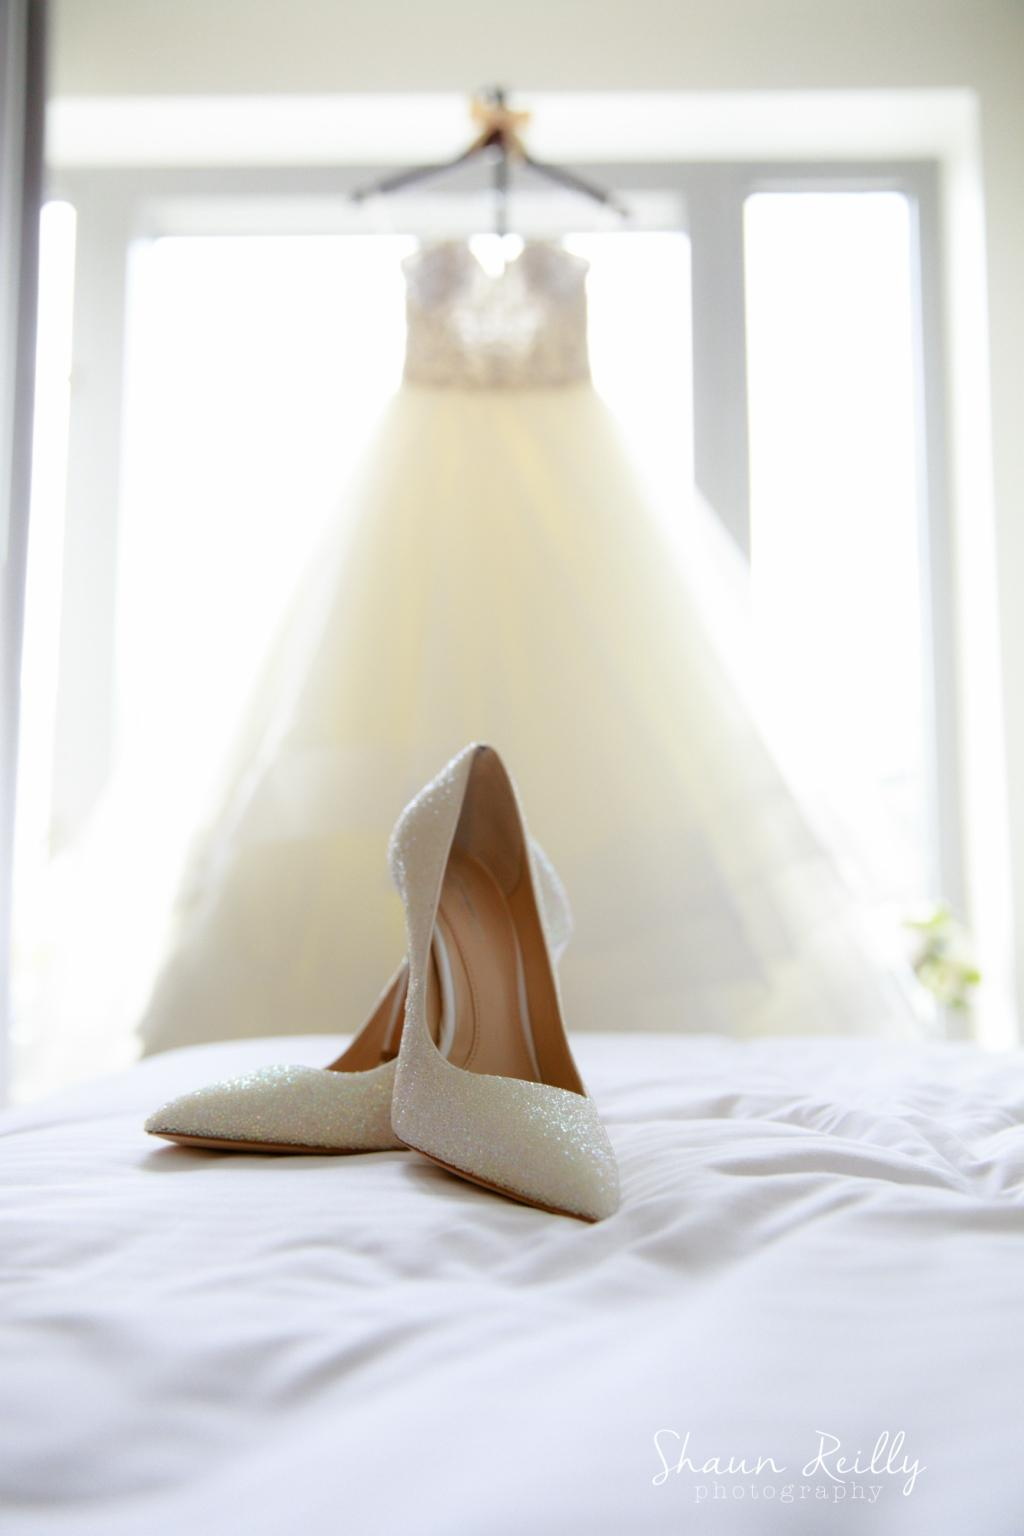 Confessions of a Philadelphia Bride | Wedding Attire Philly In Love Philadelphia Weddings